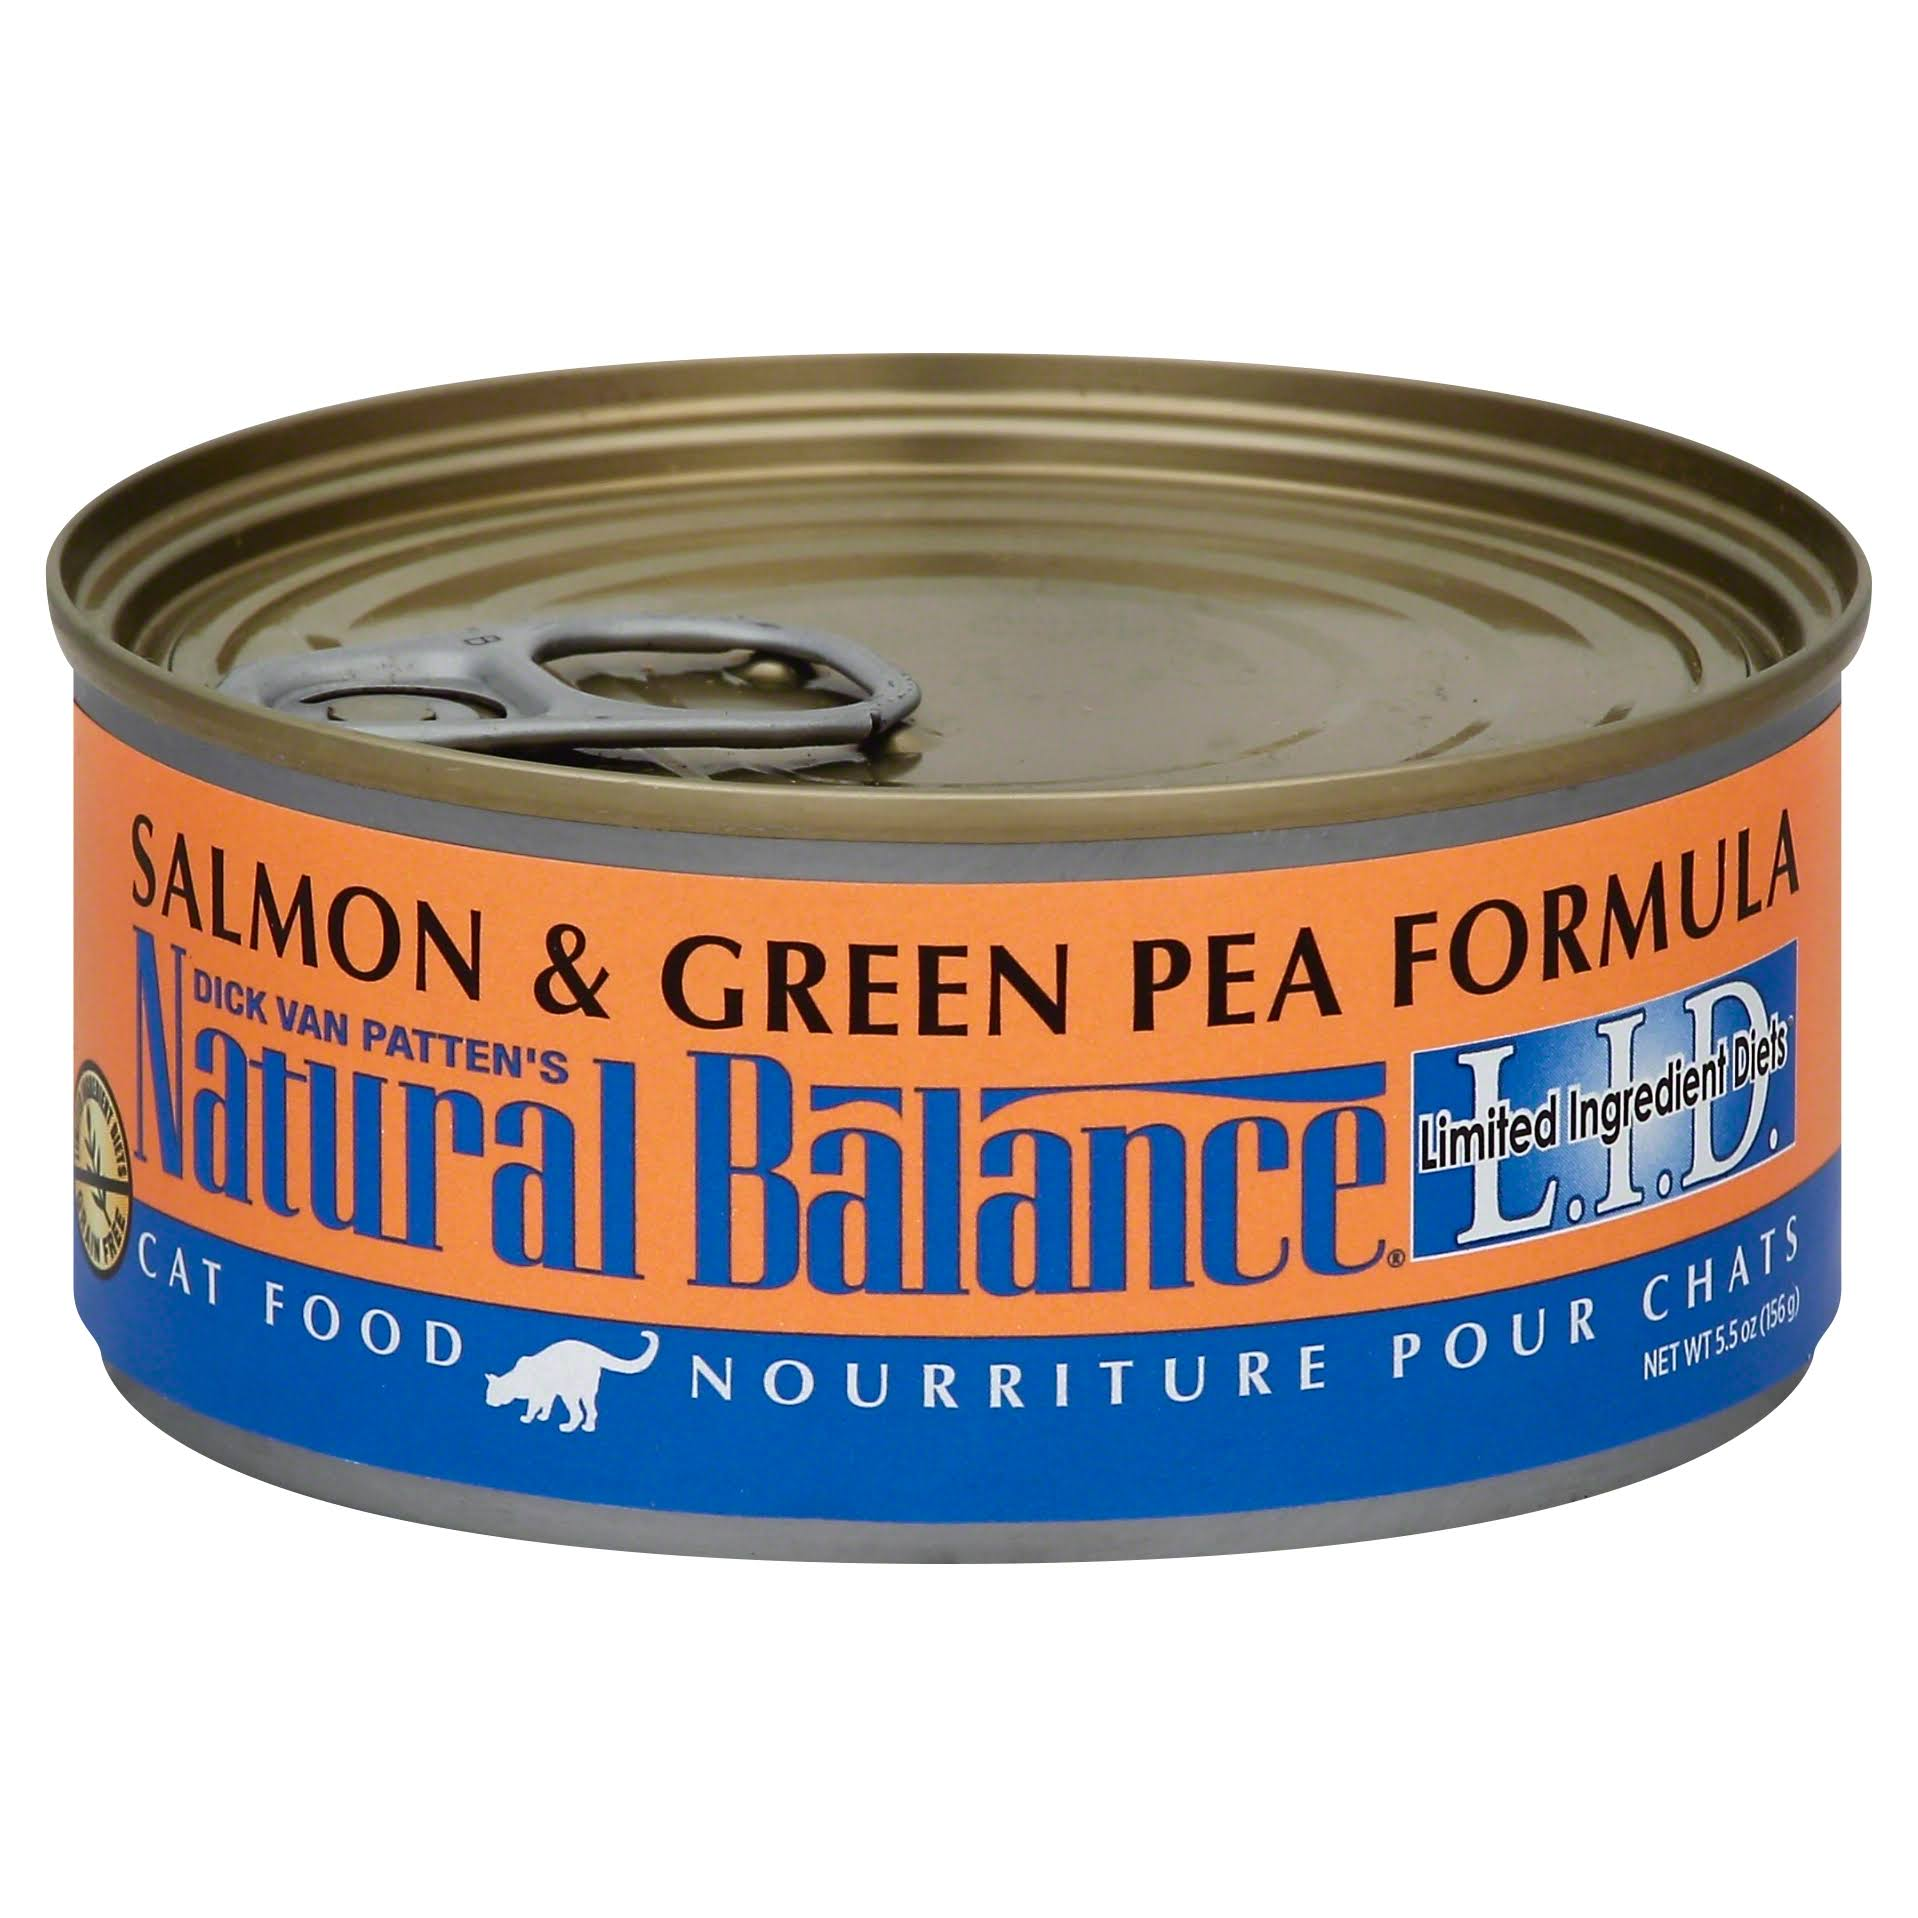 Natural Balance Lid Cat Food - Salmon & Green Pea